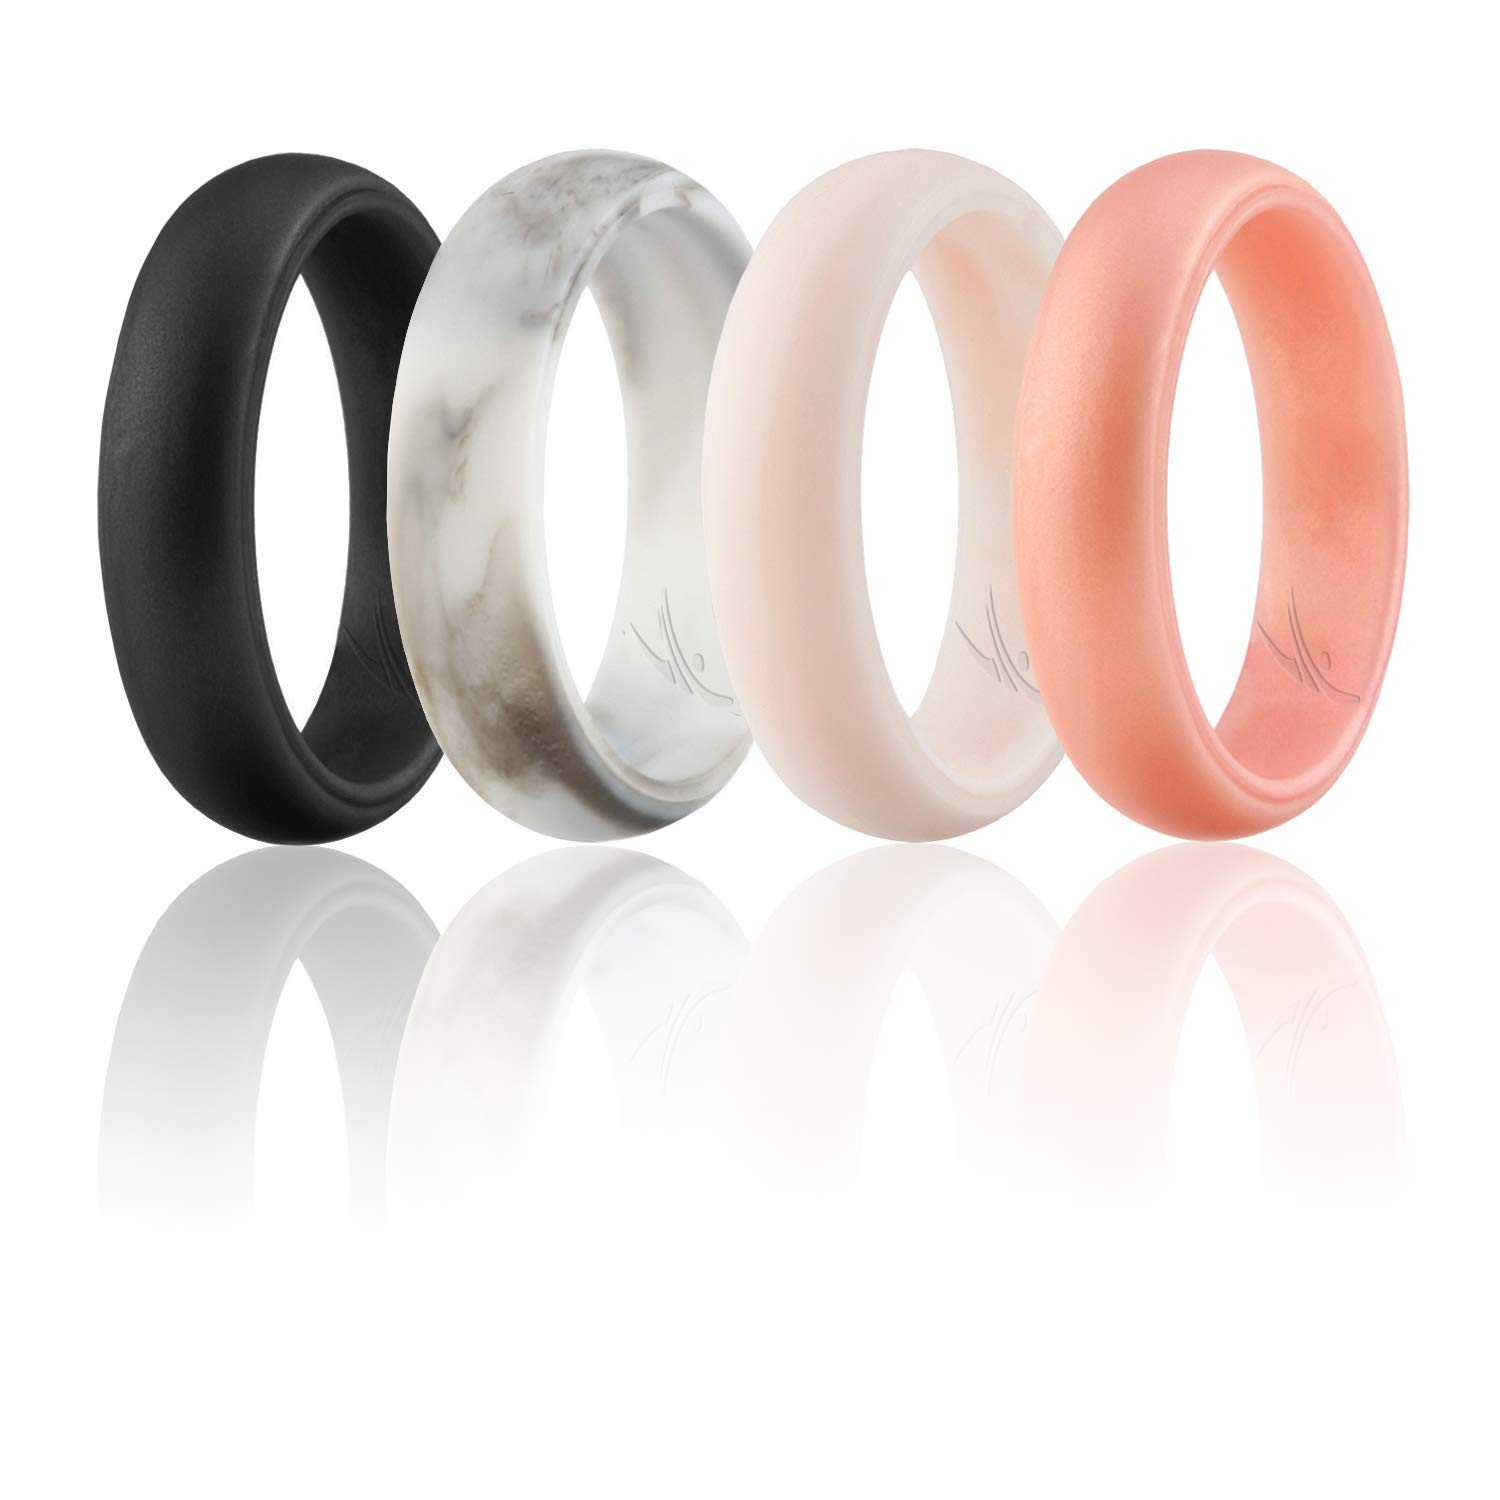 ROQ Silicone Wedding Ring for Women, Set of 4 Silicone Rubber Wedding Bands - Whit-Black Marble, White-Rose Gold Marble - Size 6 by ROQ